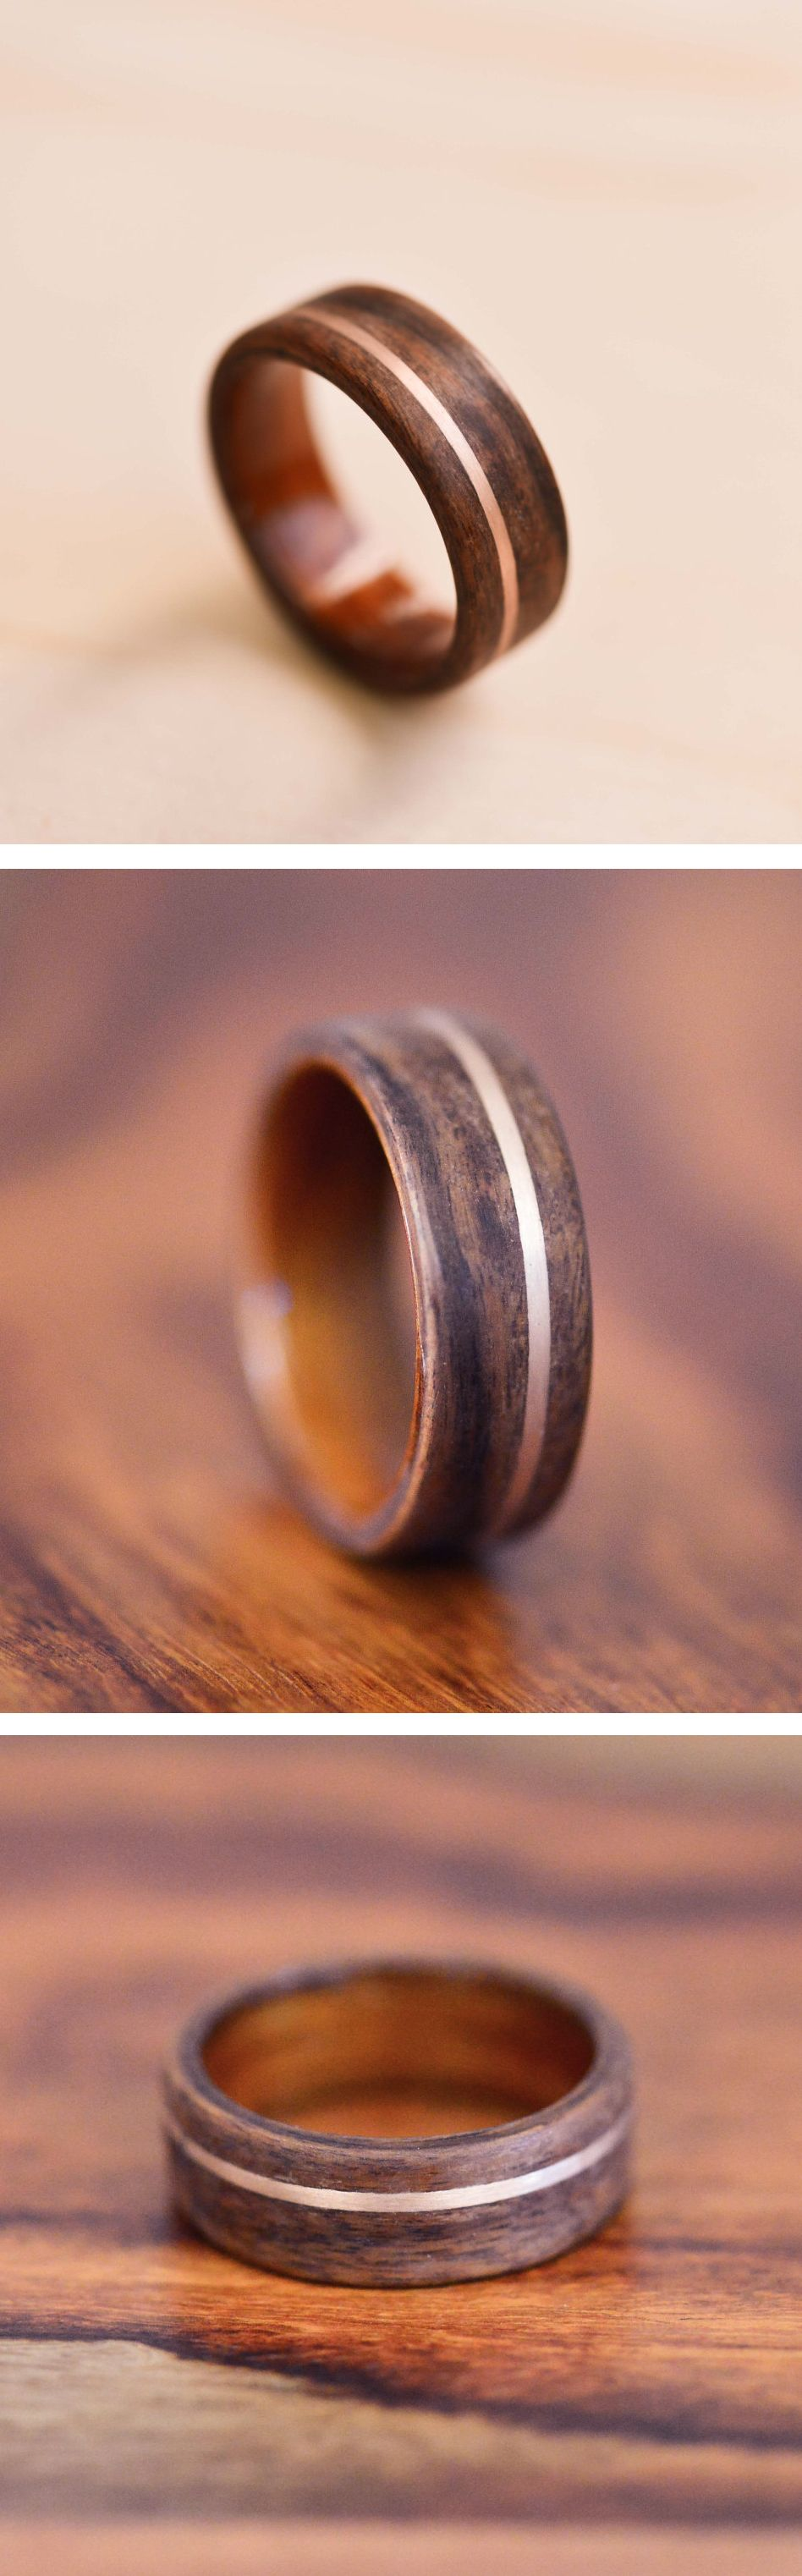 cherry s wedding ring dave bentwood diamond a engagement with rings method wood hut products beach wooden bent